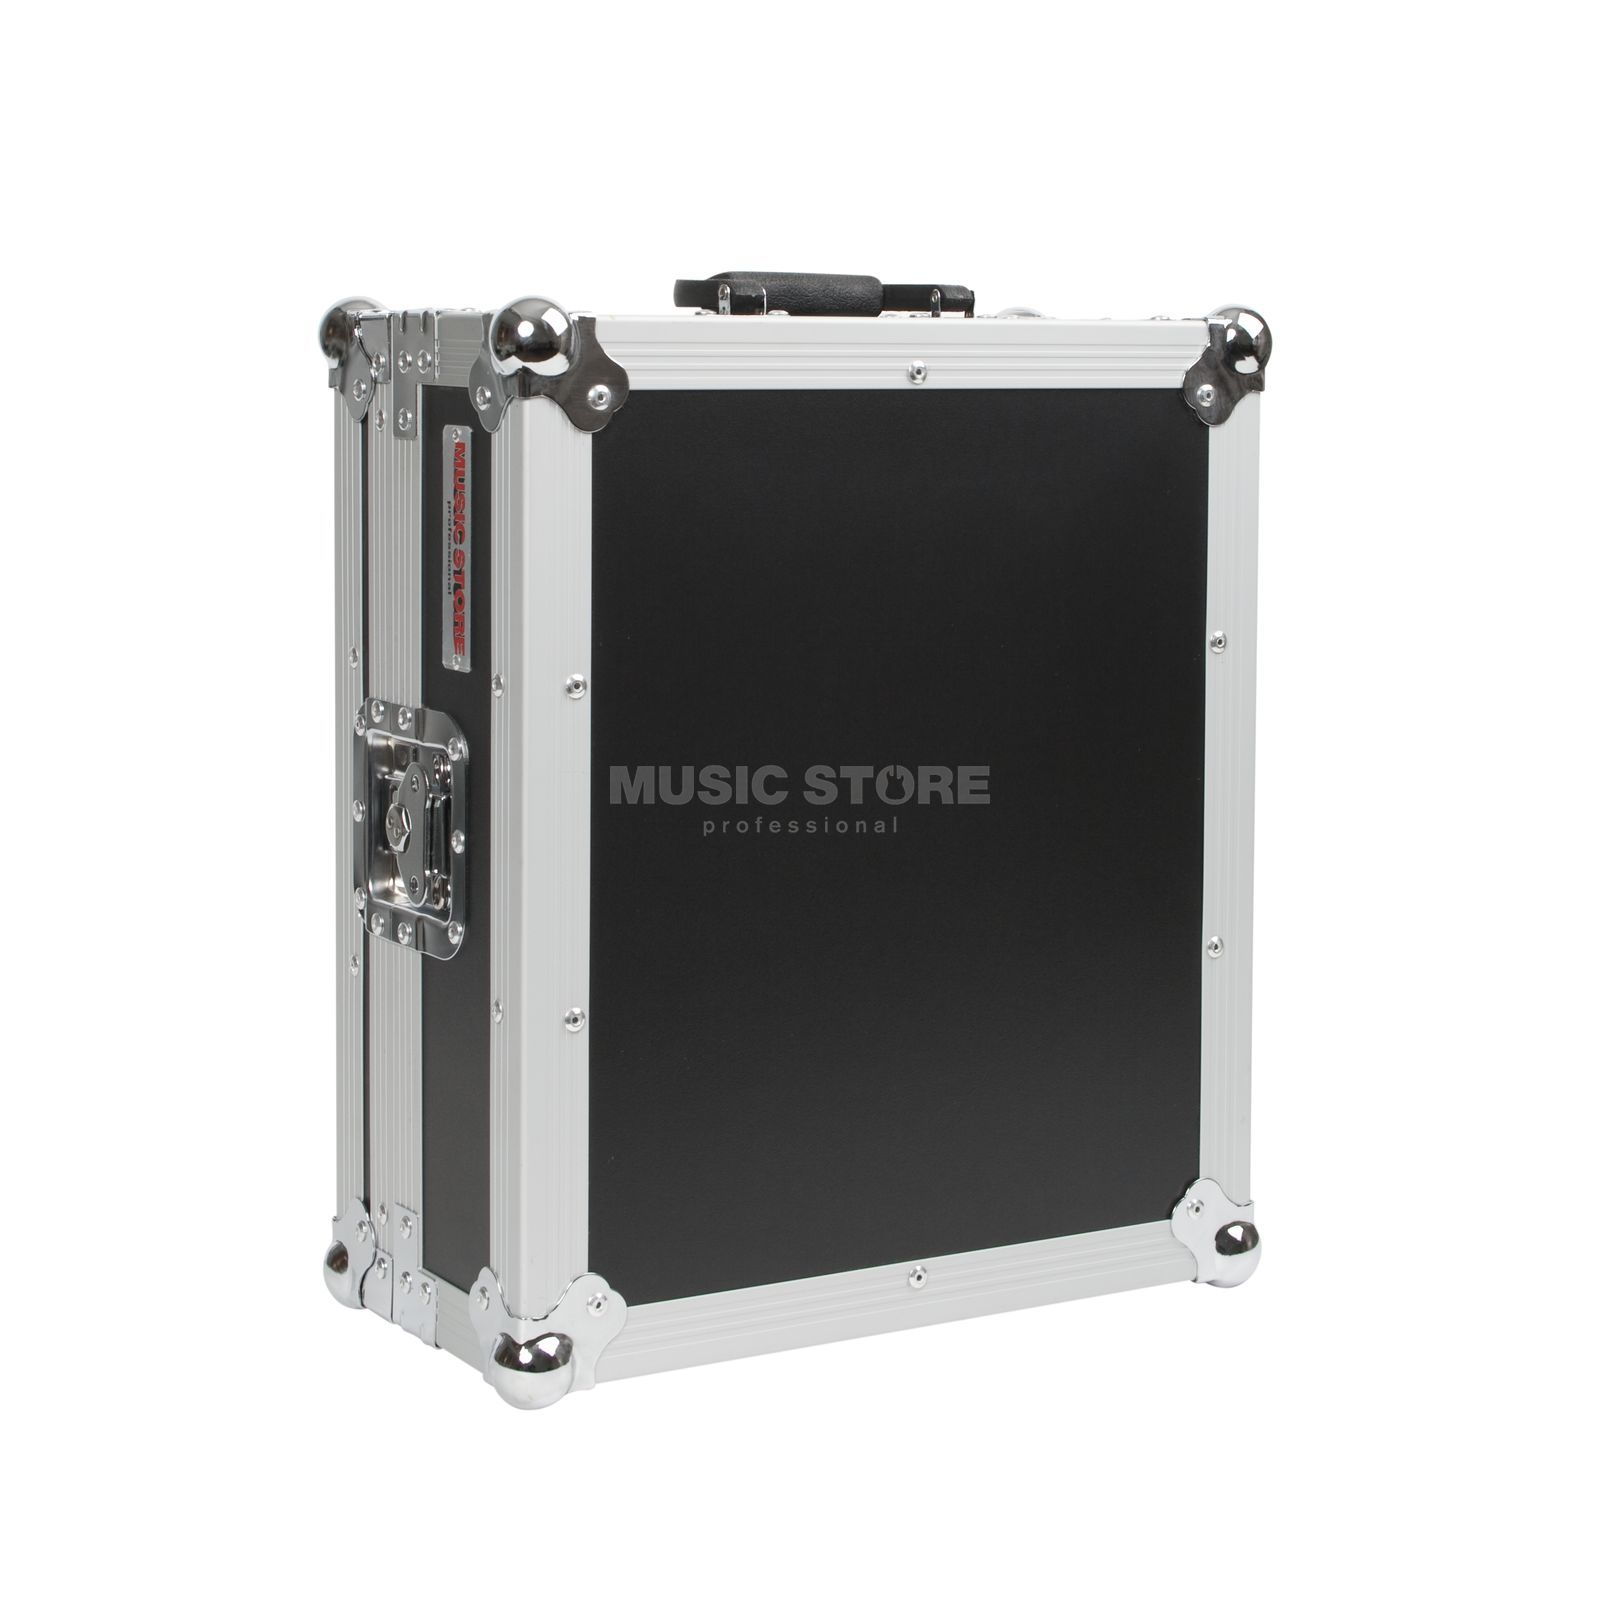 MUSIC STORE Hood Case DJ Mixer DJM 850/800/700, DJX 750 etc. Product Image